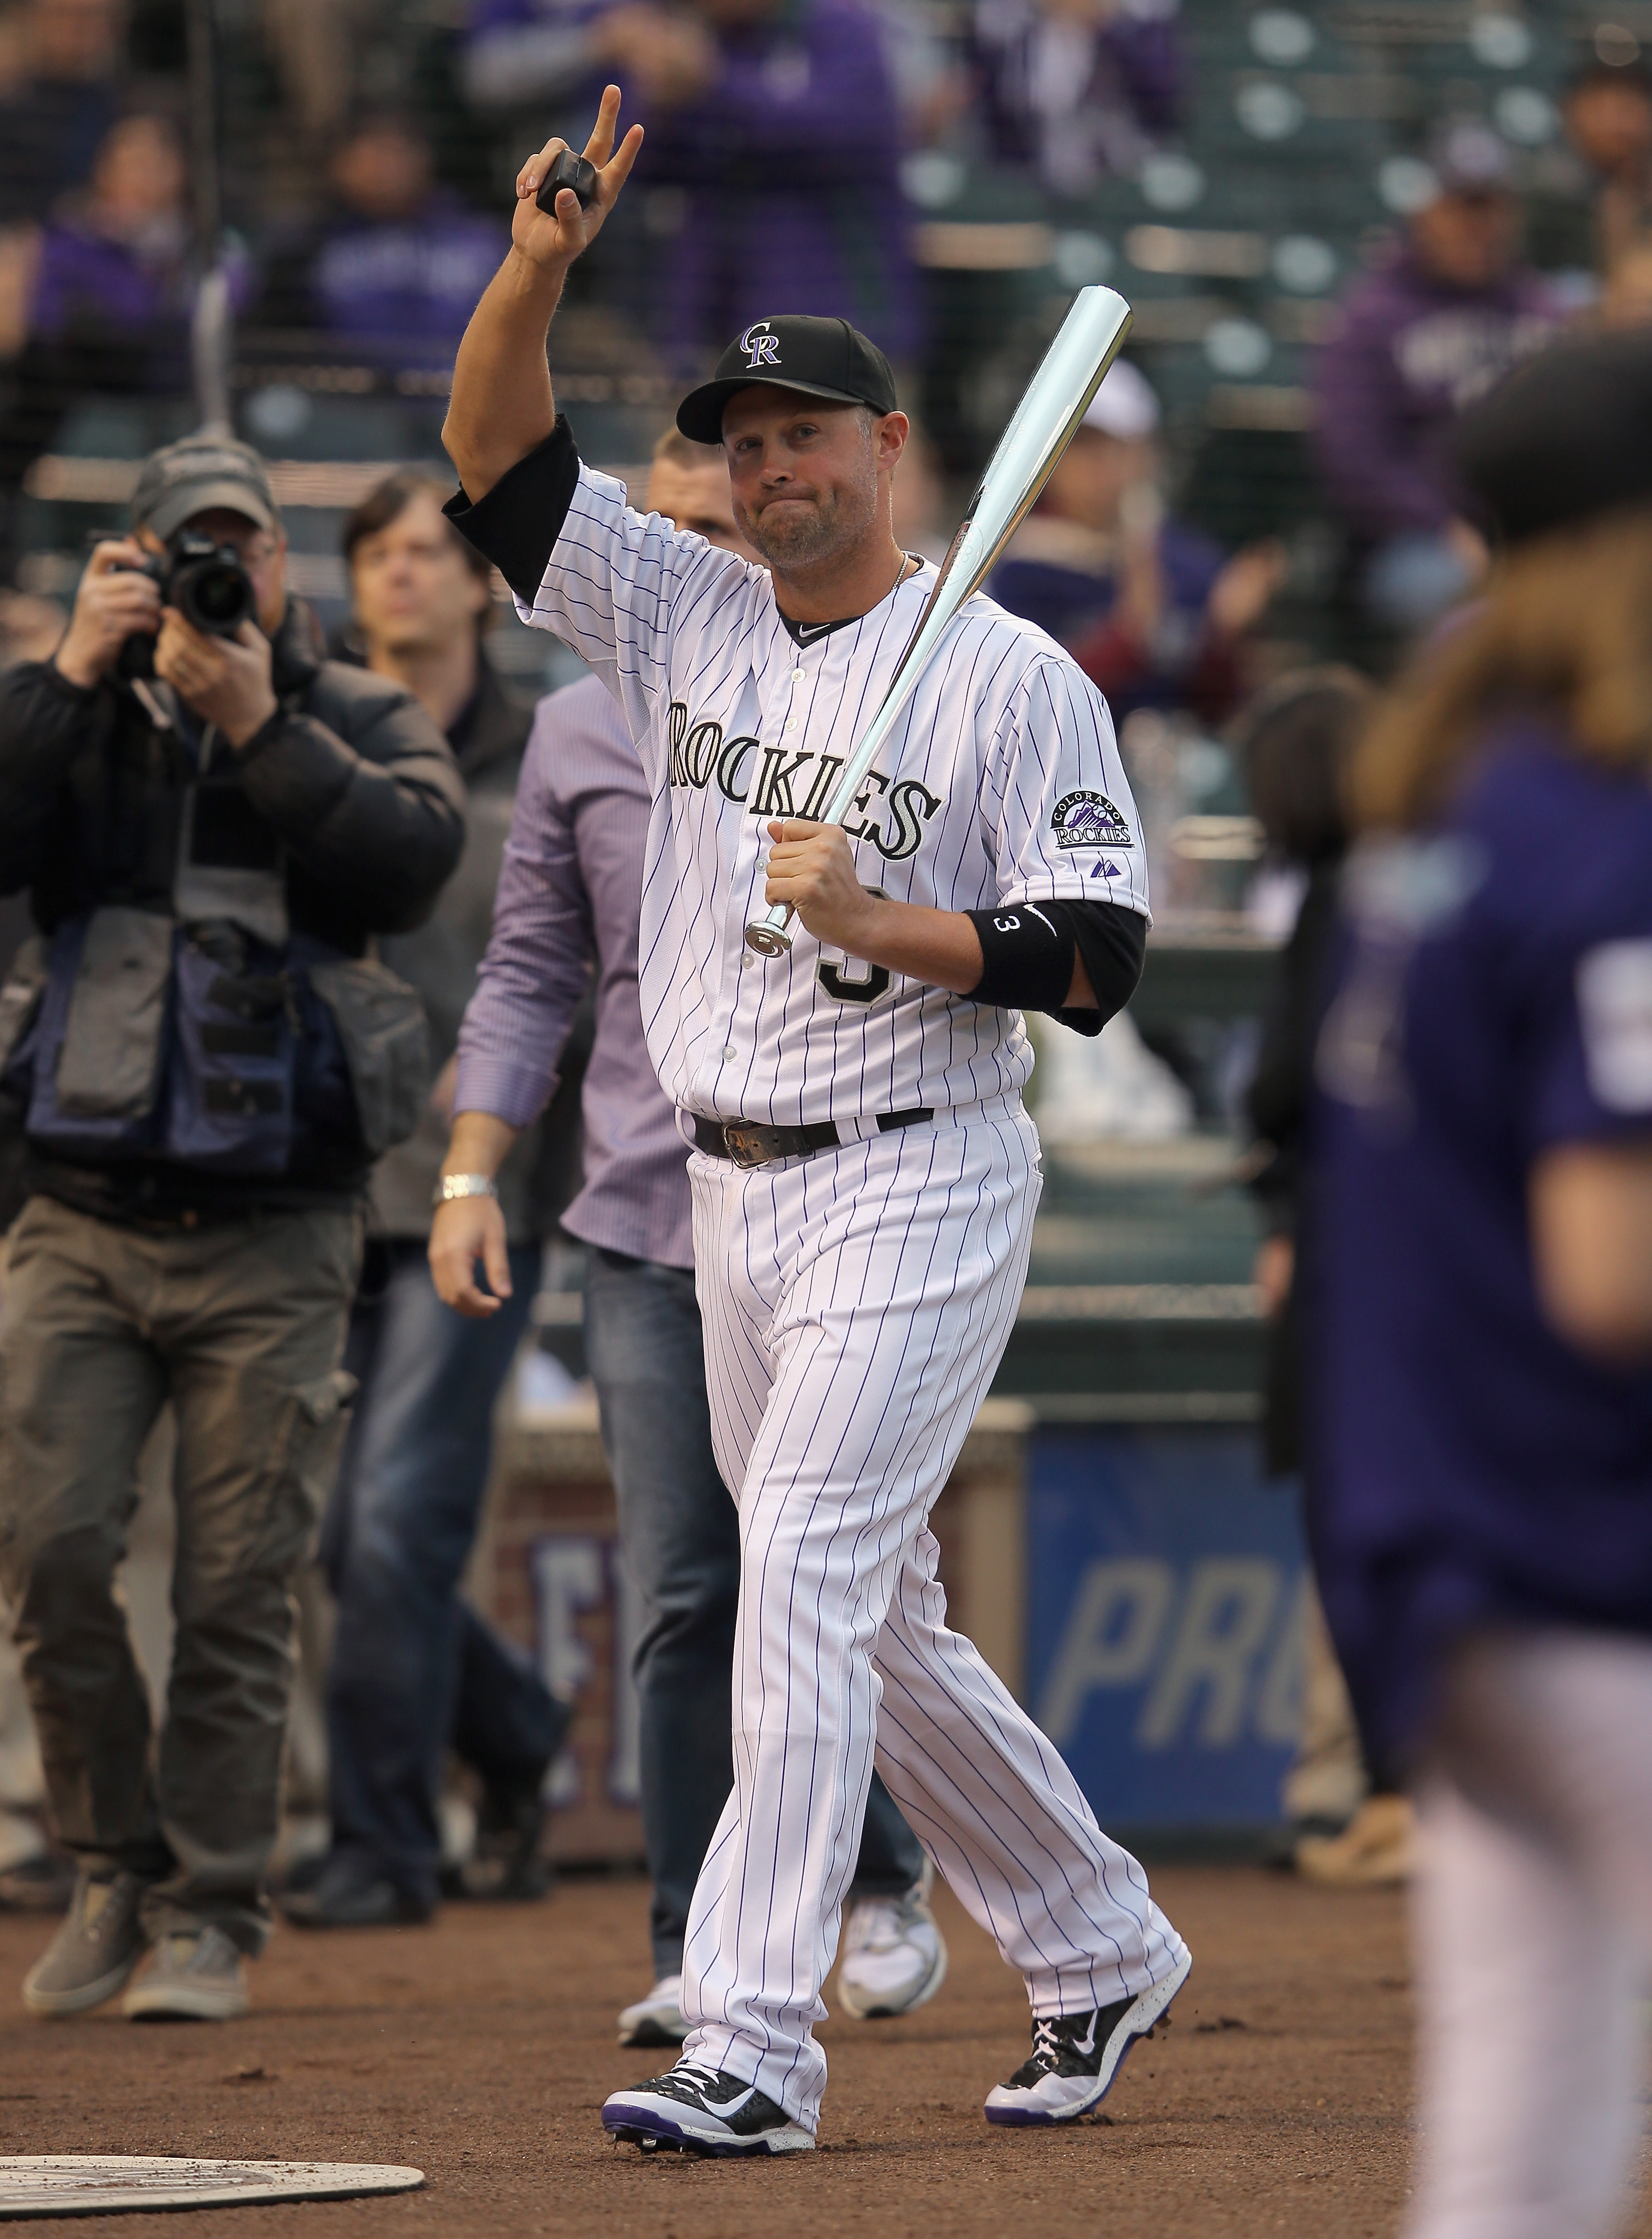 Will Michael Cuddyer show up on this list? (No, no he won't.)